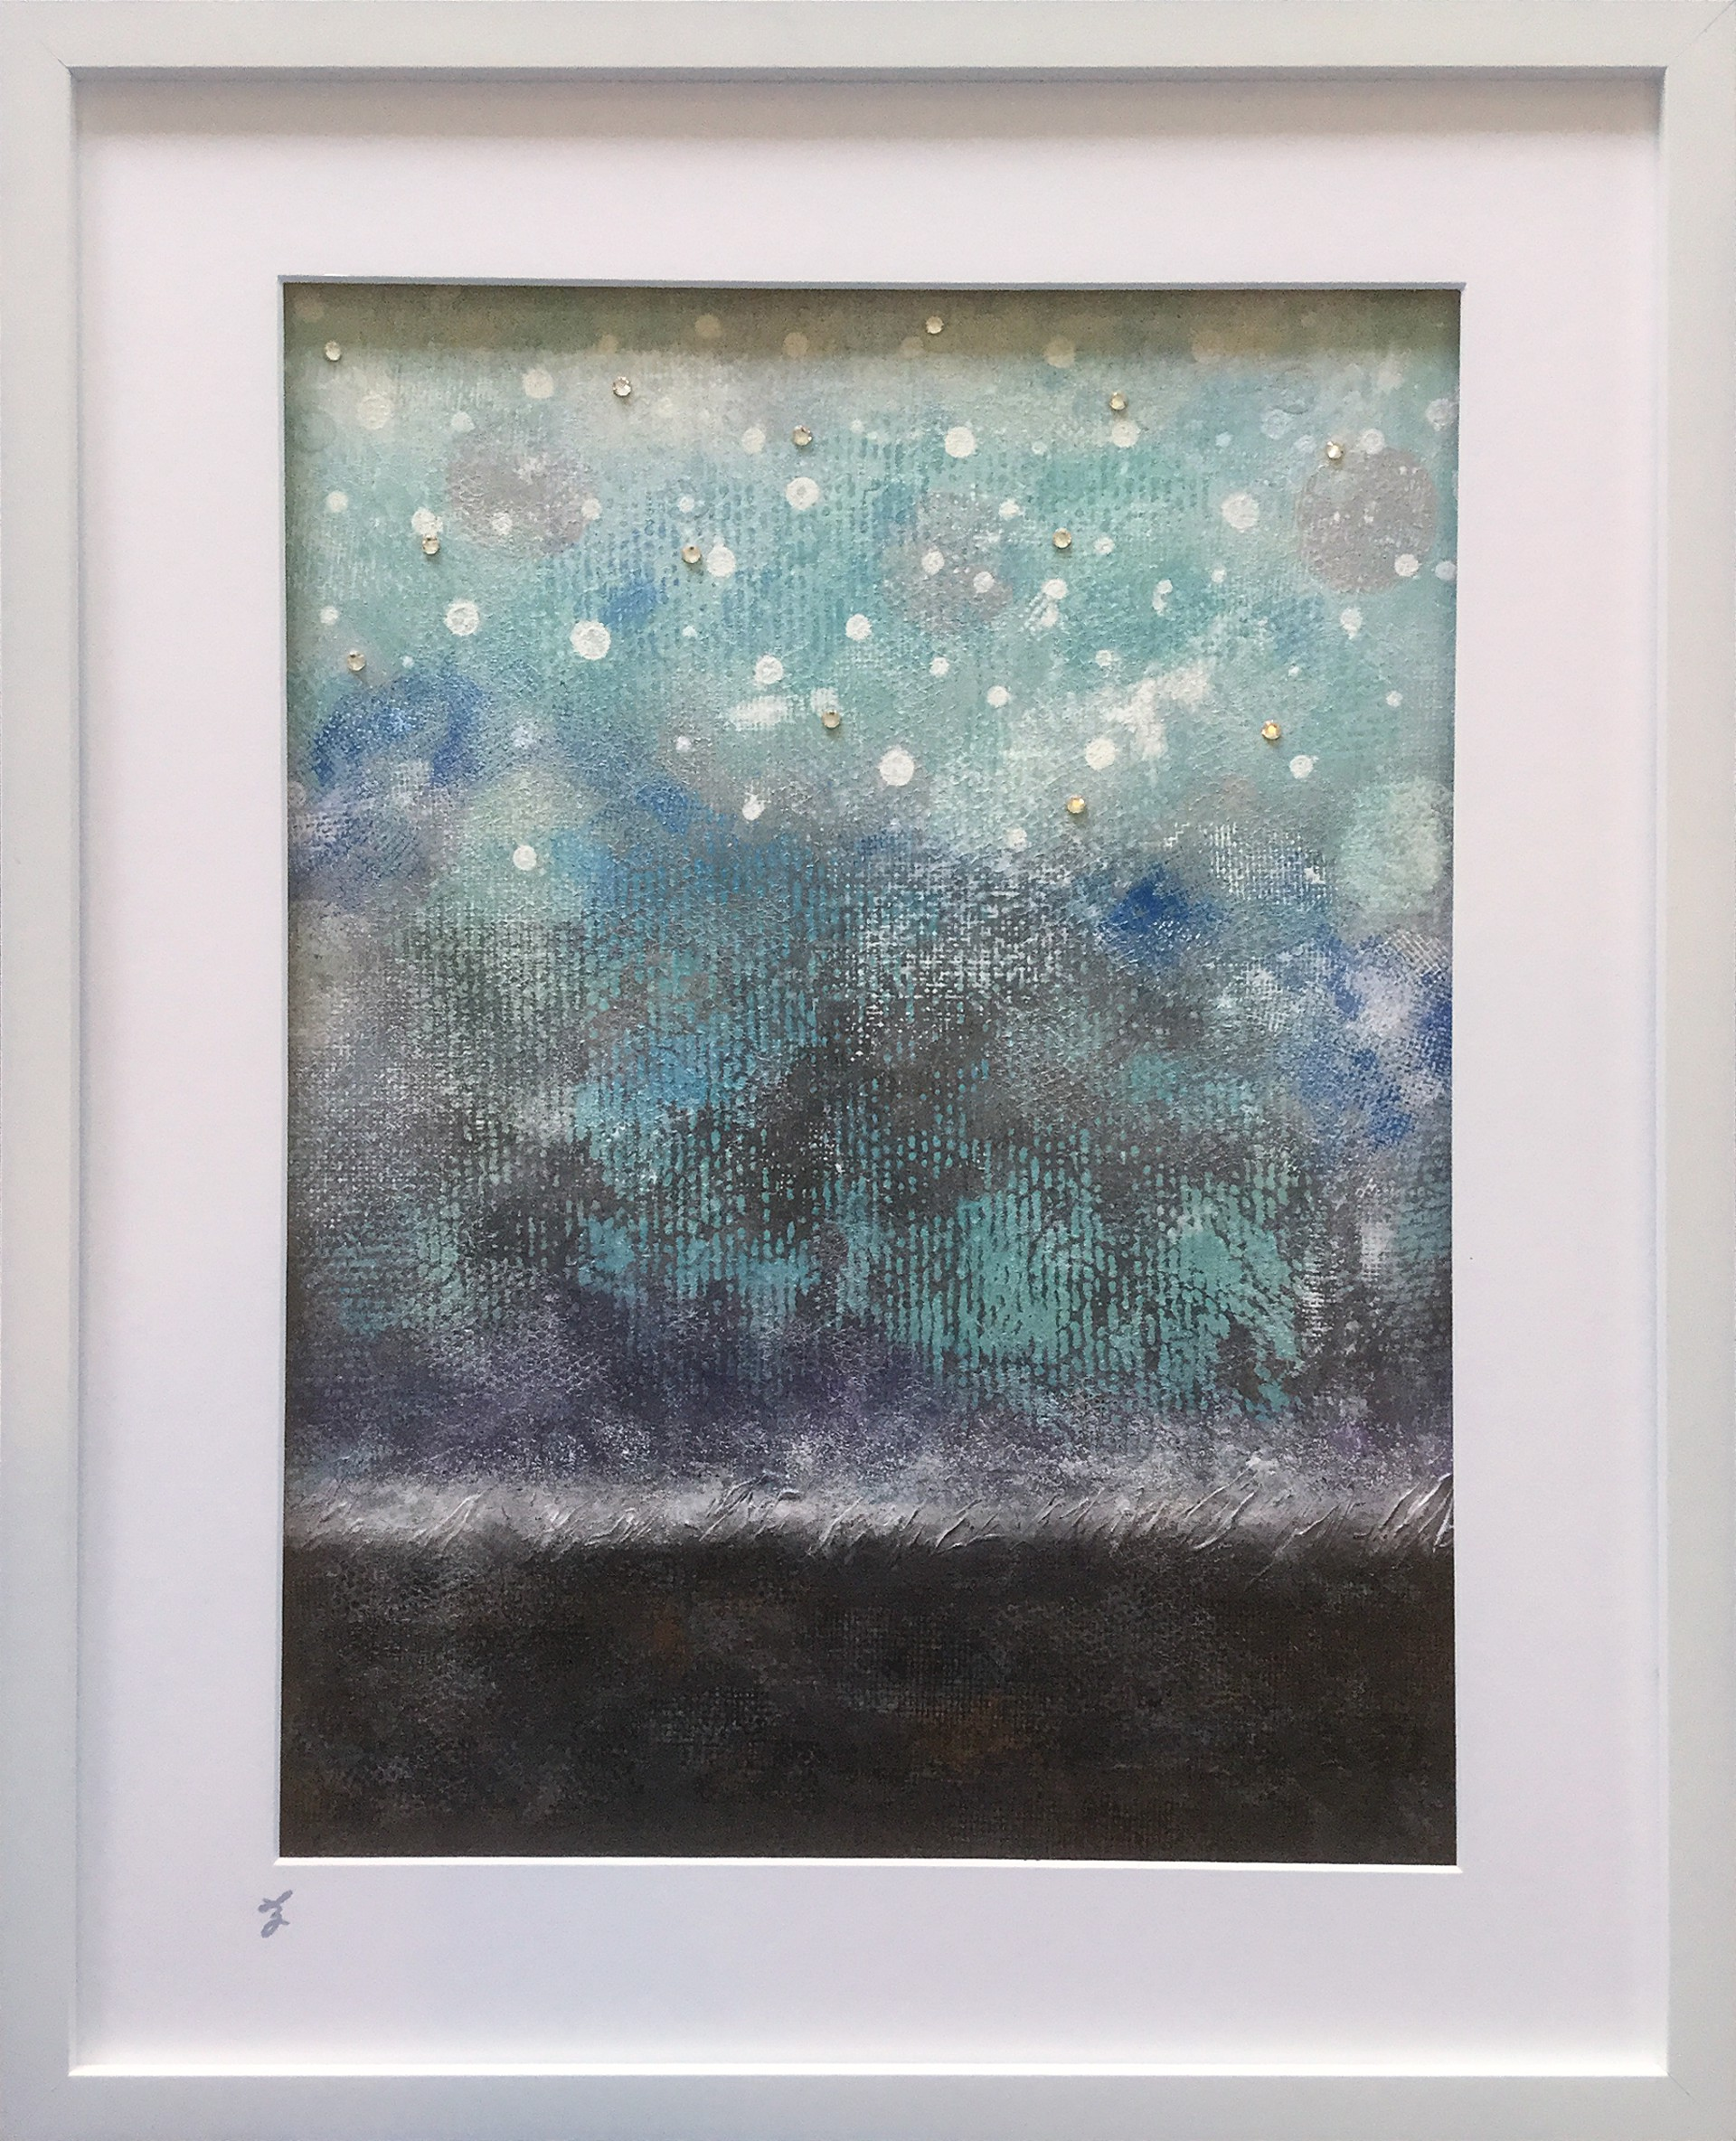 Atmospheric Particles by Lisa Zahler (Lafayette, OR)